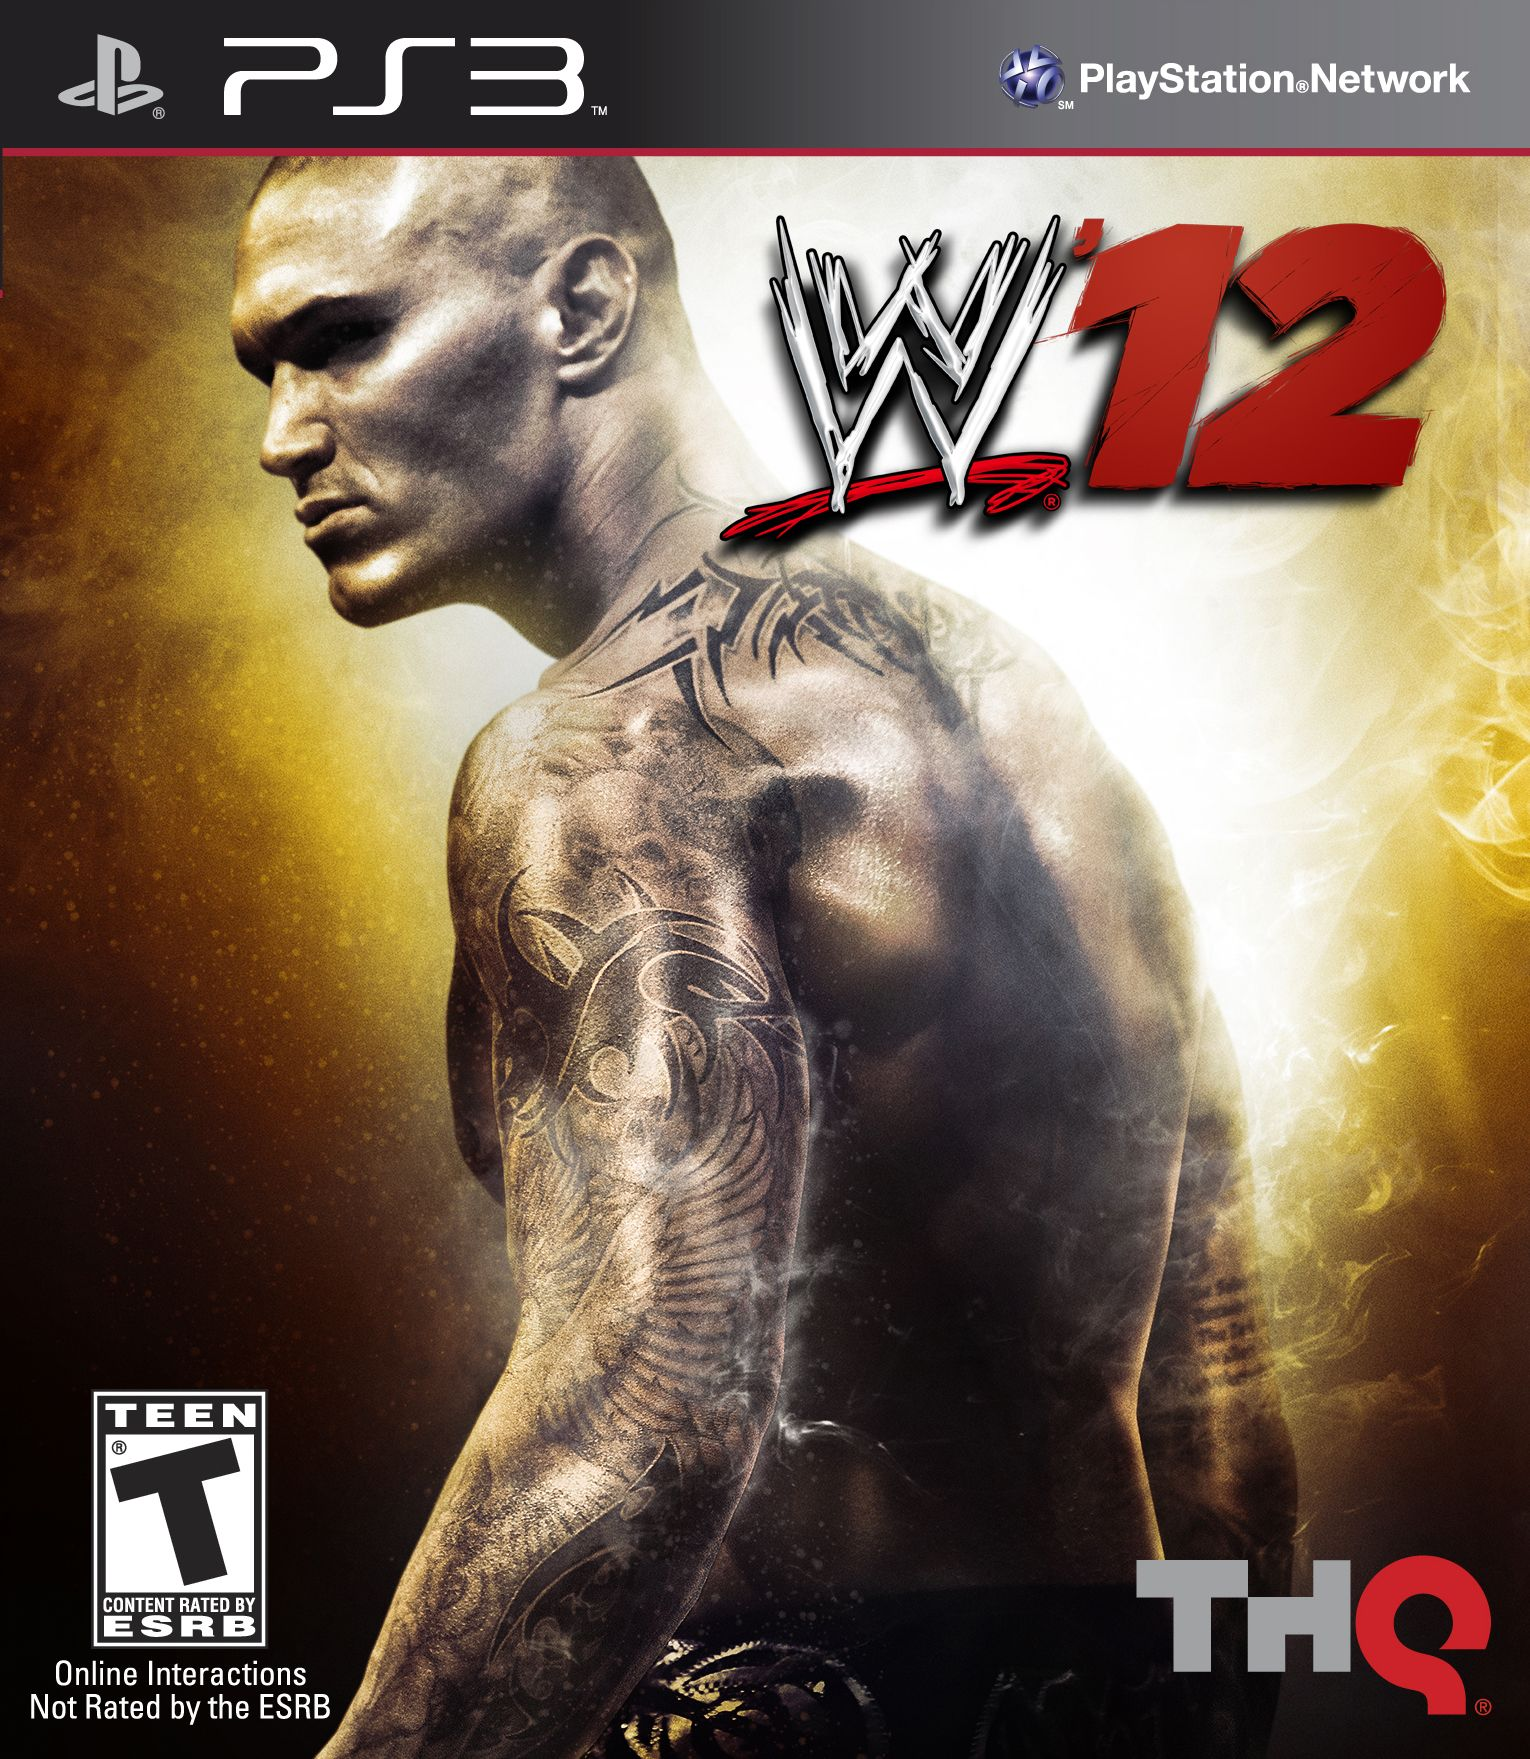 Best WWE Video Game from the main WWE video game series | Playbuzz